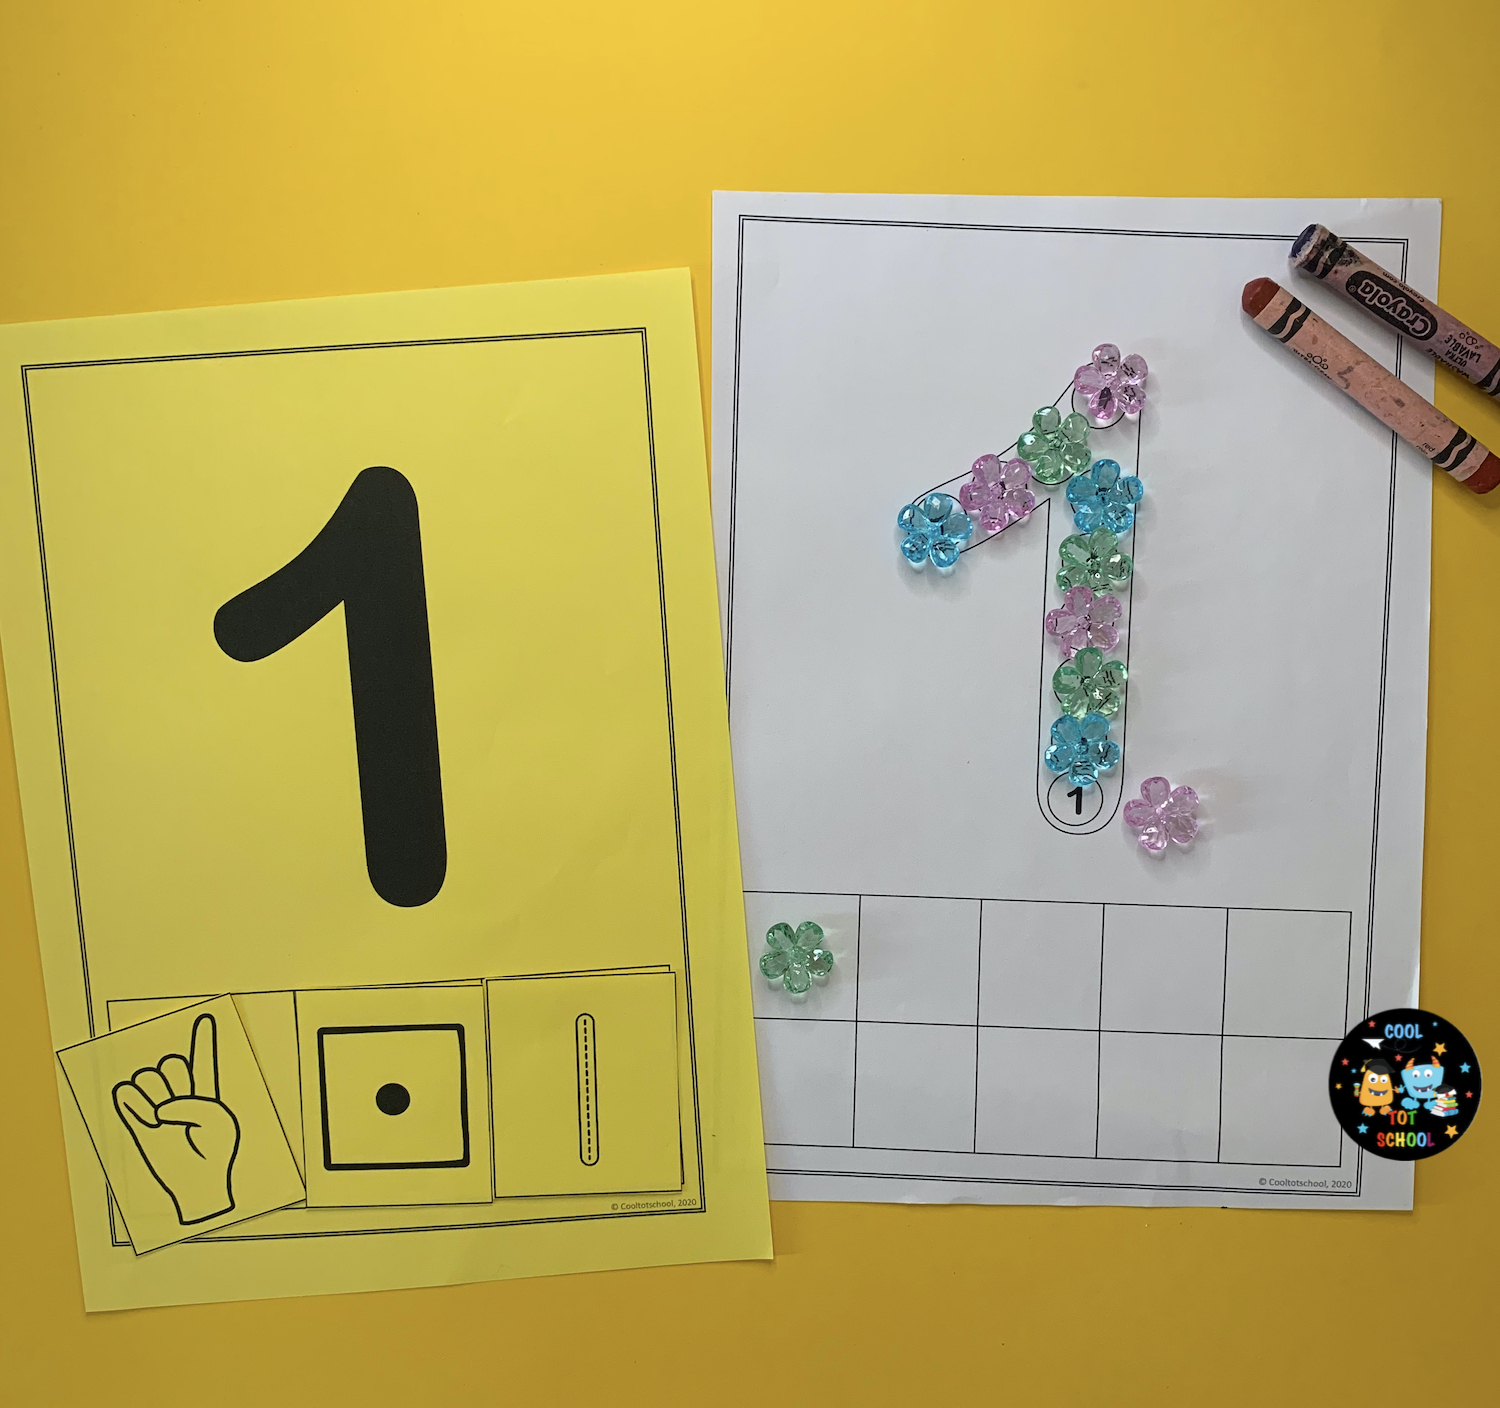 number-1-introducing-activities-for-kids